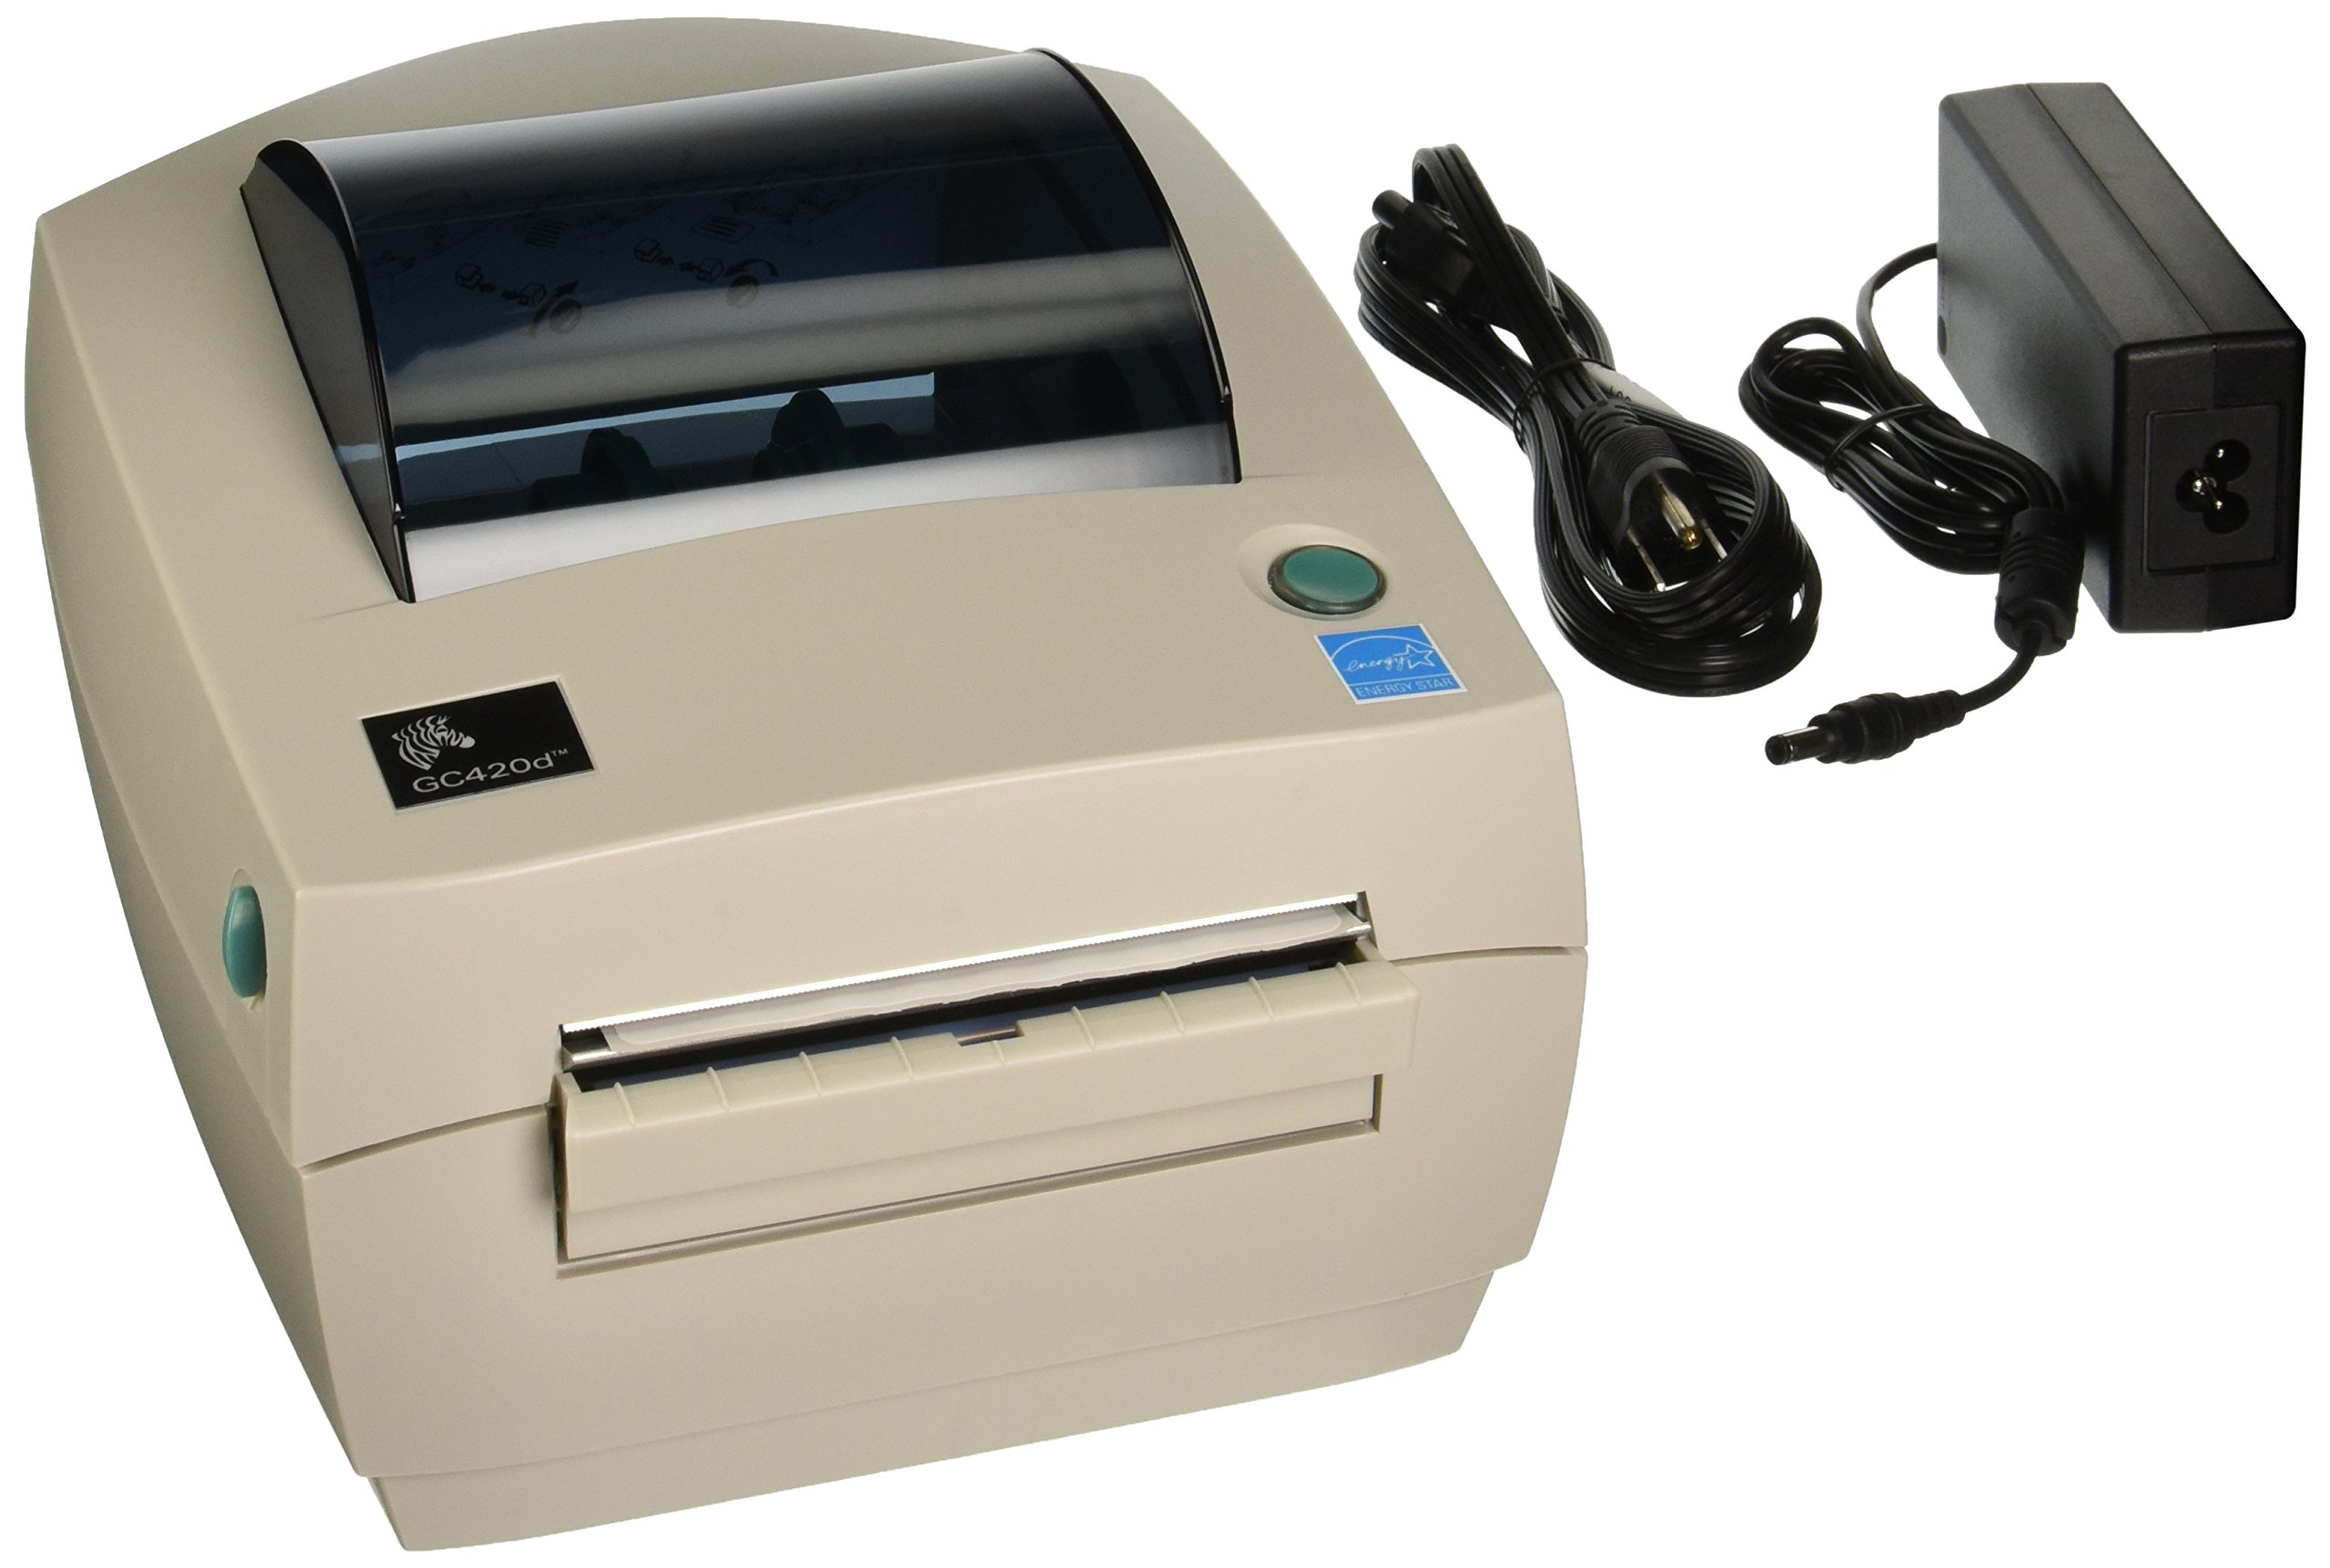 Zebra GC420-200511-000 GC420D Direct Thermal Printer 203 DPI, Monochrome, 6.7'' H x 7.9'' W x 8.2'' D, With Peeler, With USB, Serial, and Parallel Connections